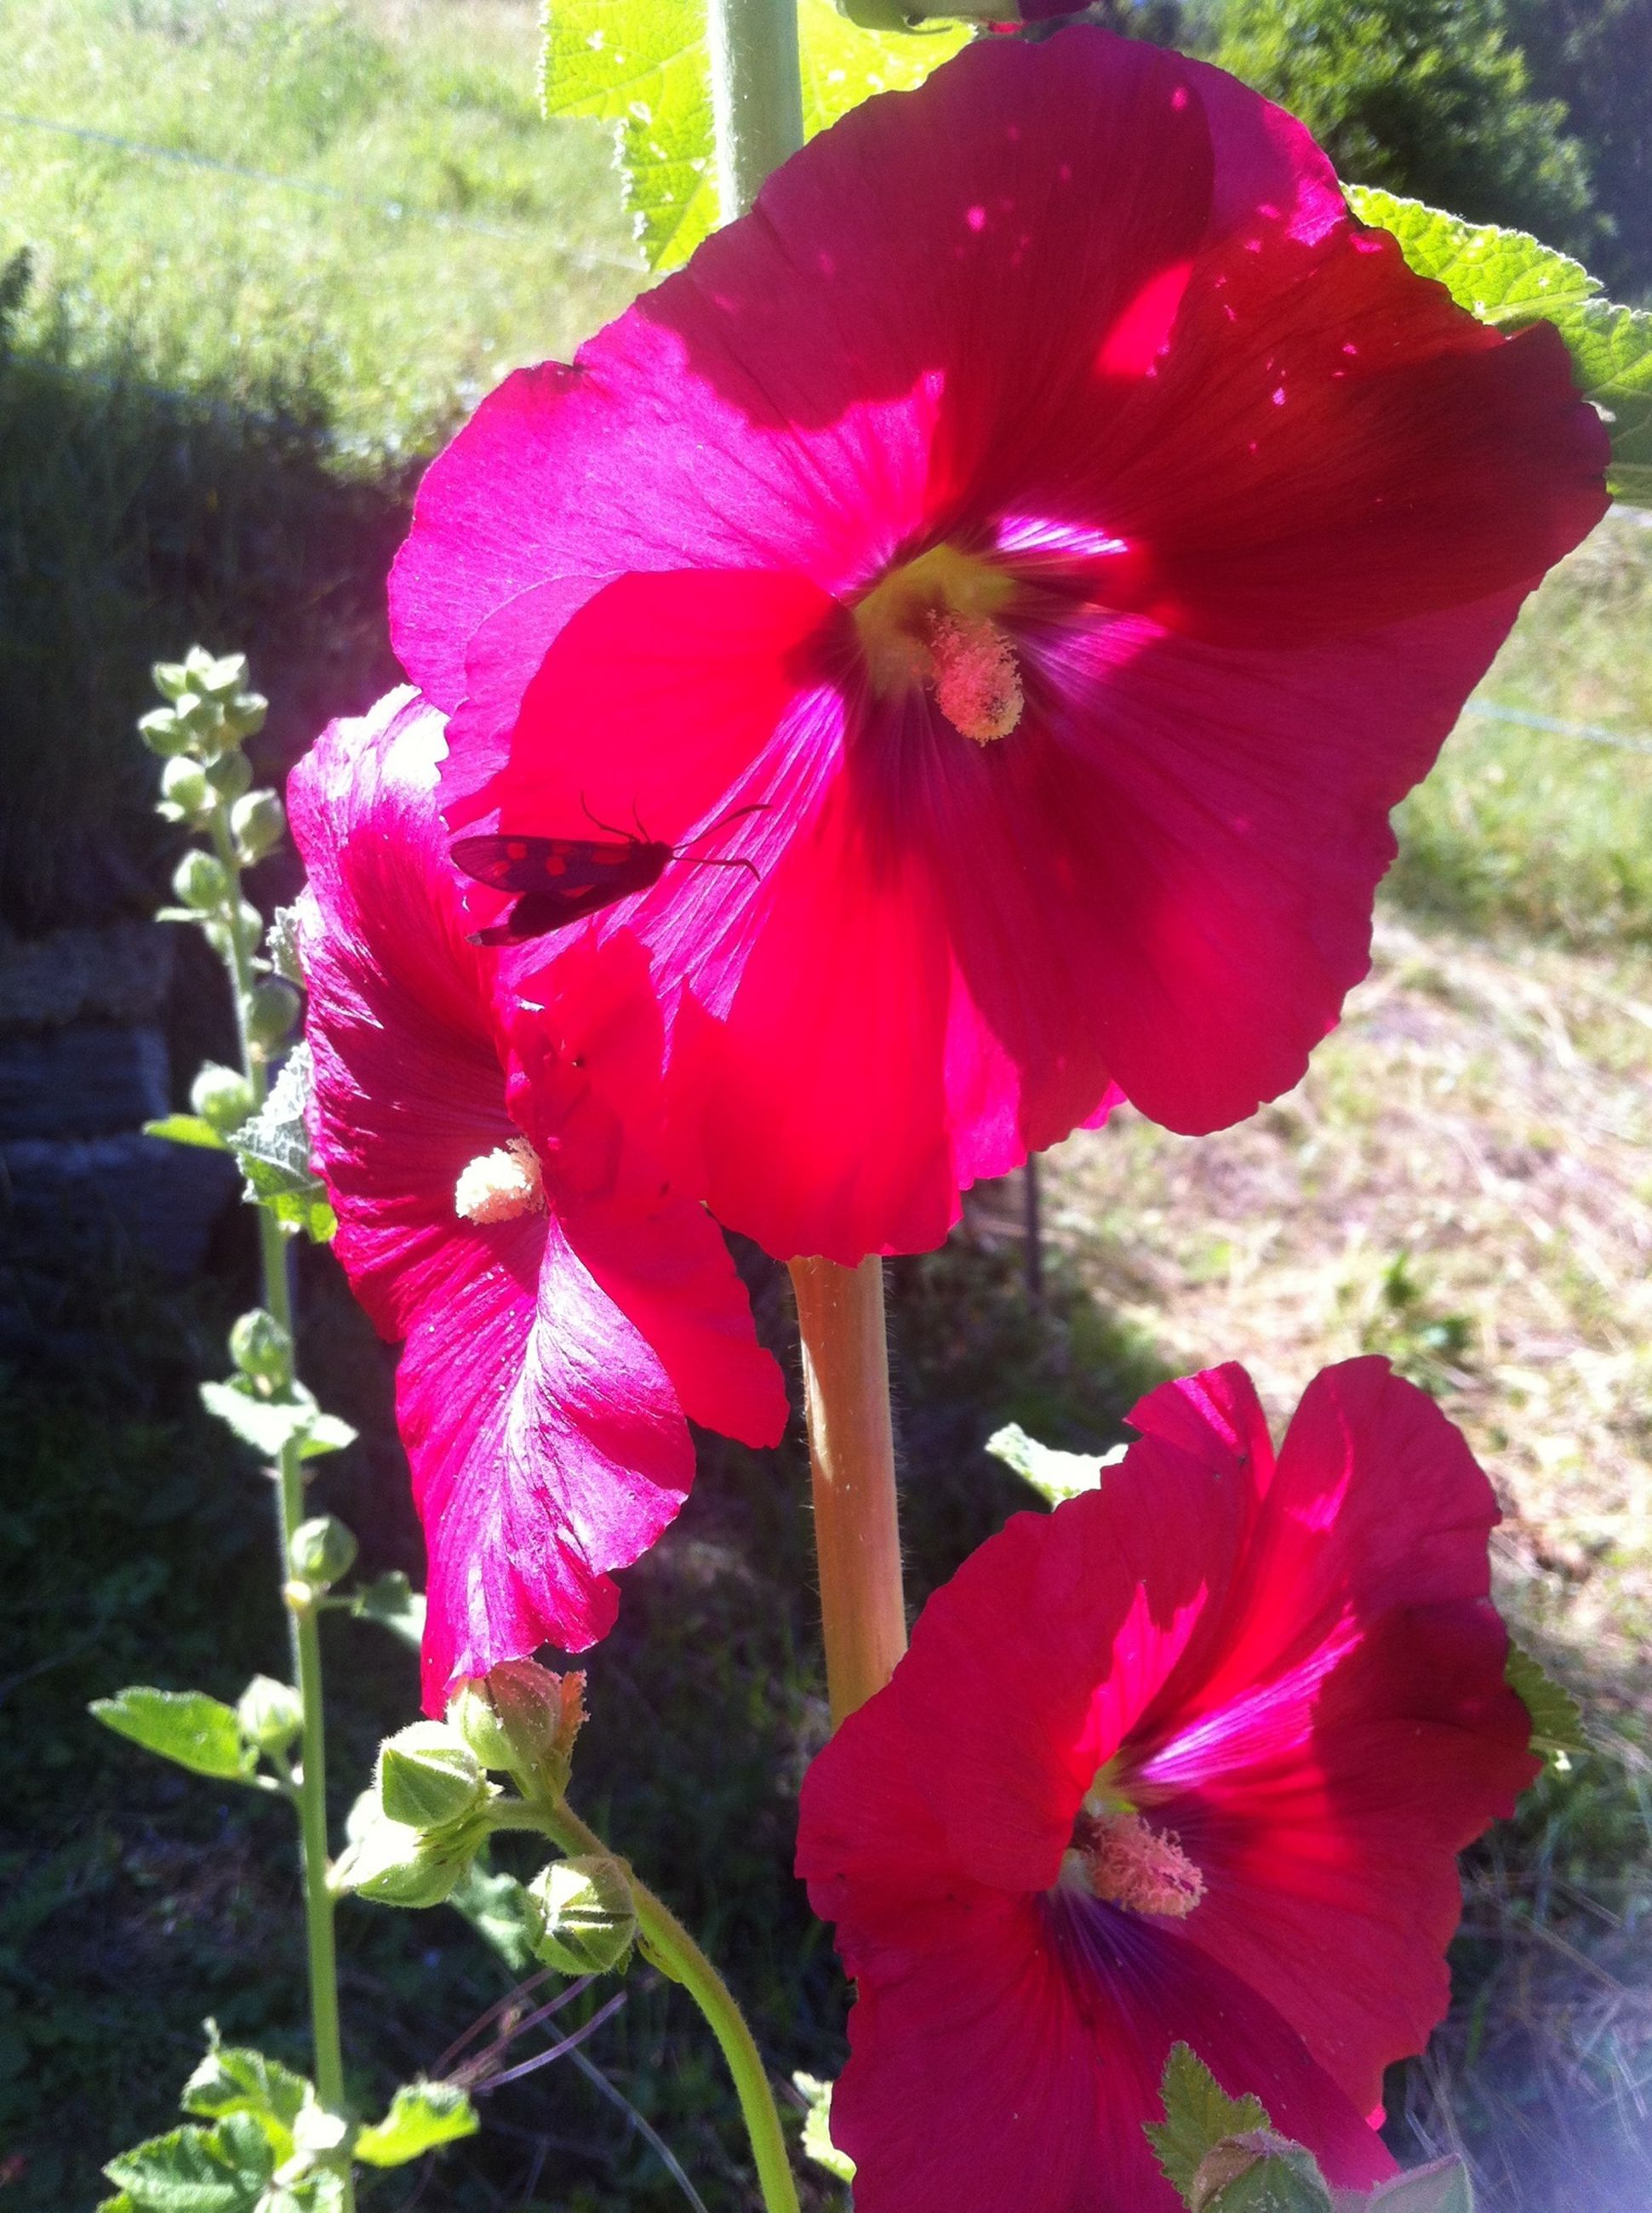 flower, petal, freshness, flower head, fragility, growth, beauty in nature, red, pollen, blooming, close-up, hibiscus, single flower, stamen, nature, plant, pink color, focus on foreground, in bloom, day